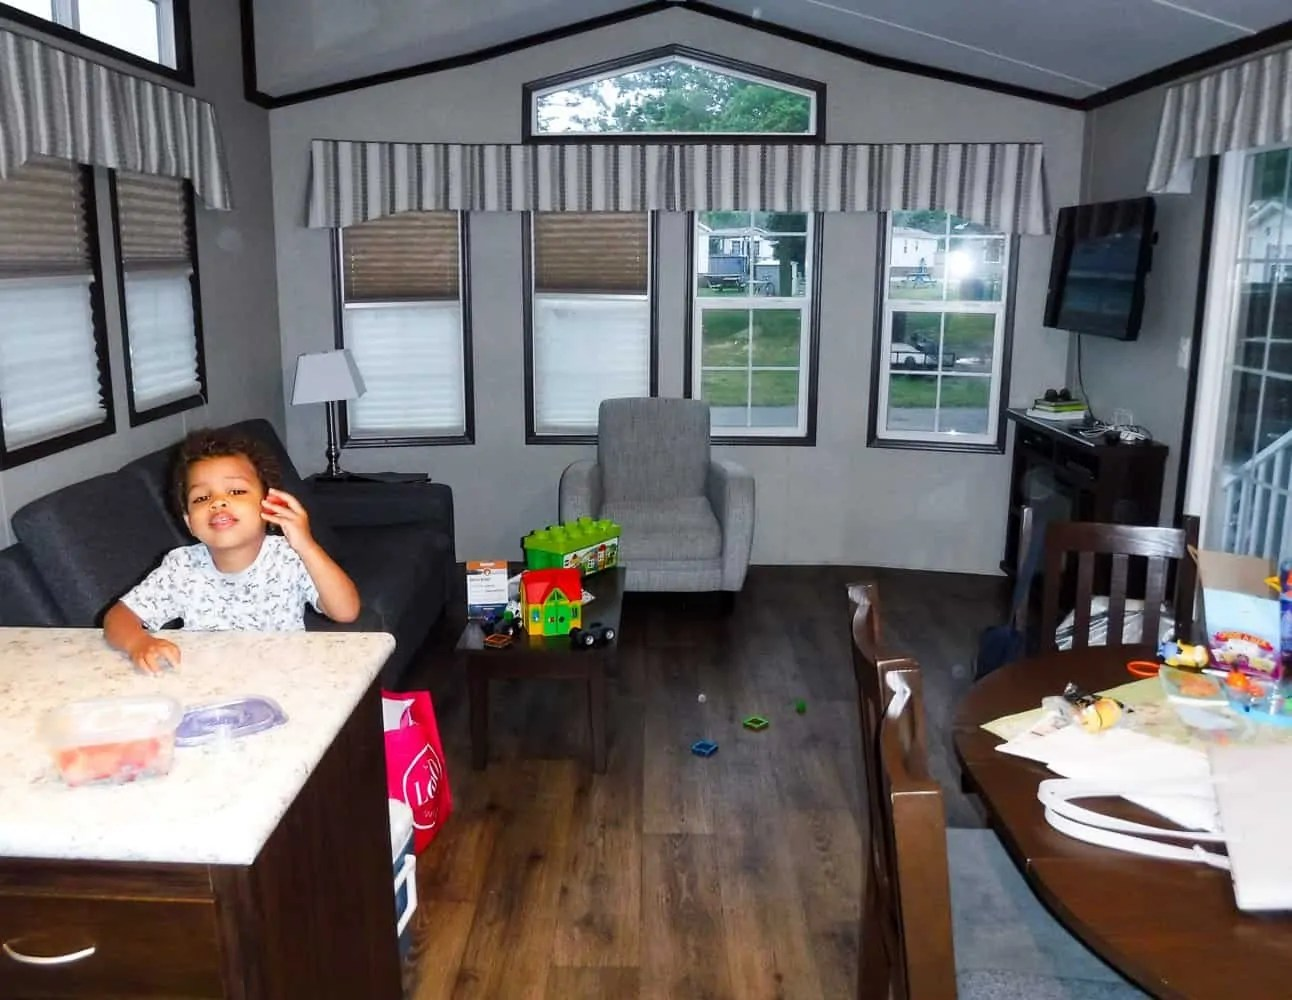 Make Vacay Matter More with Stays at Sherkston Shores! — Inside the Premium Rental Cottage